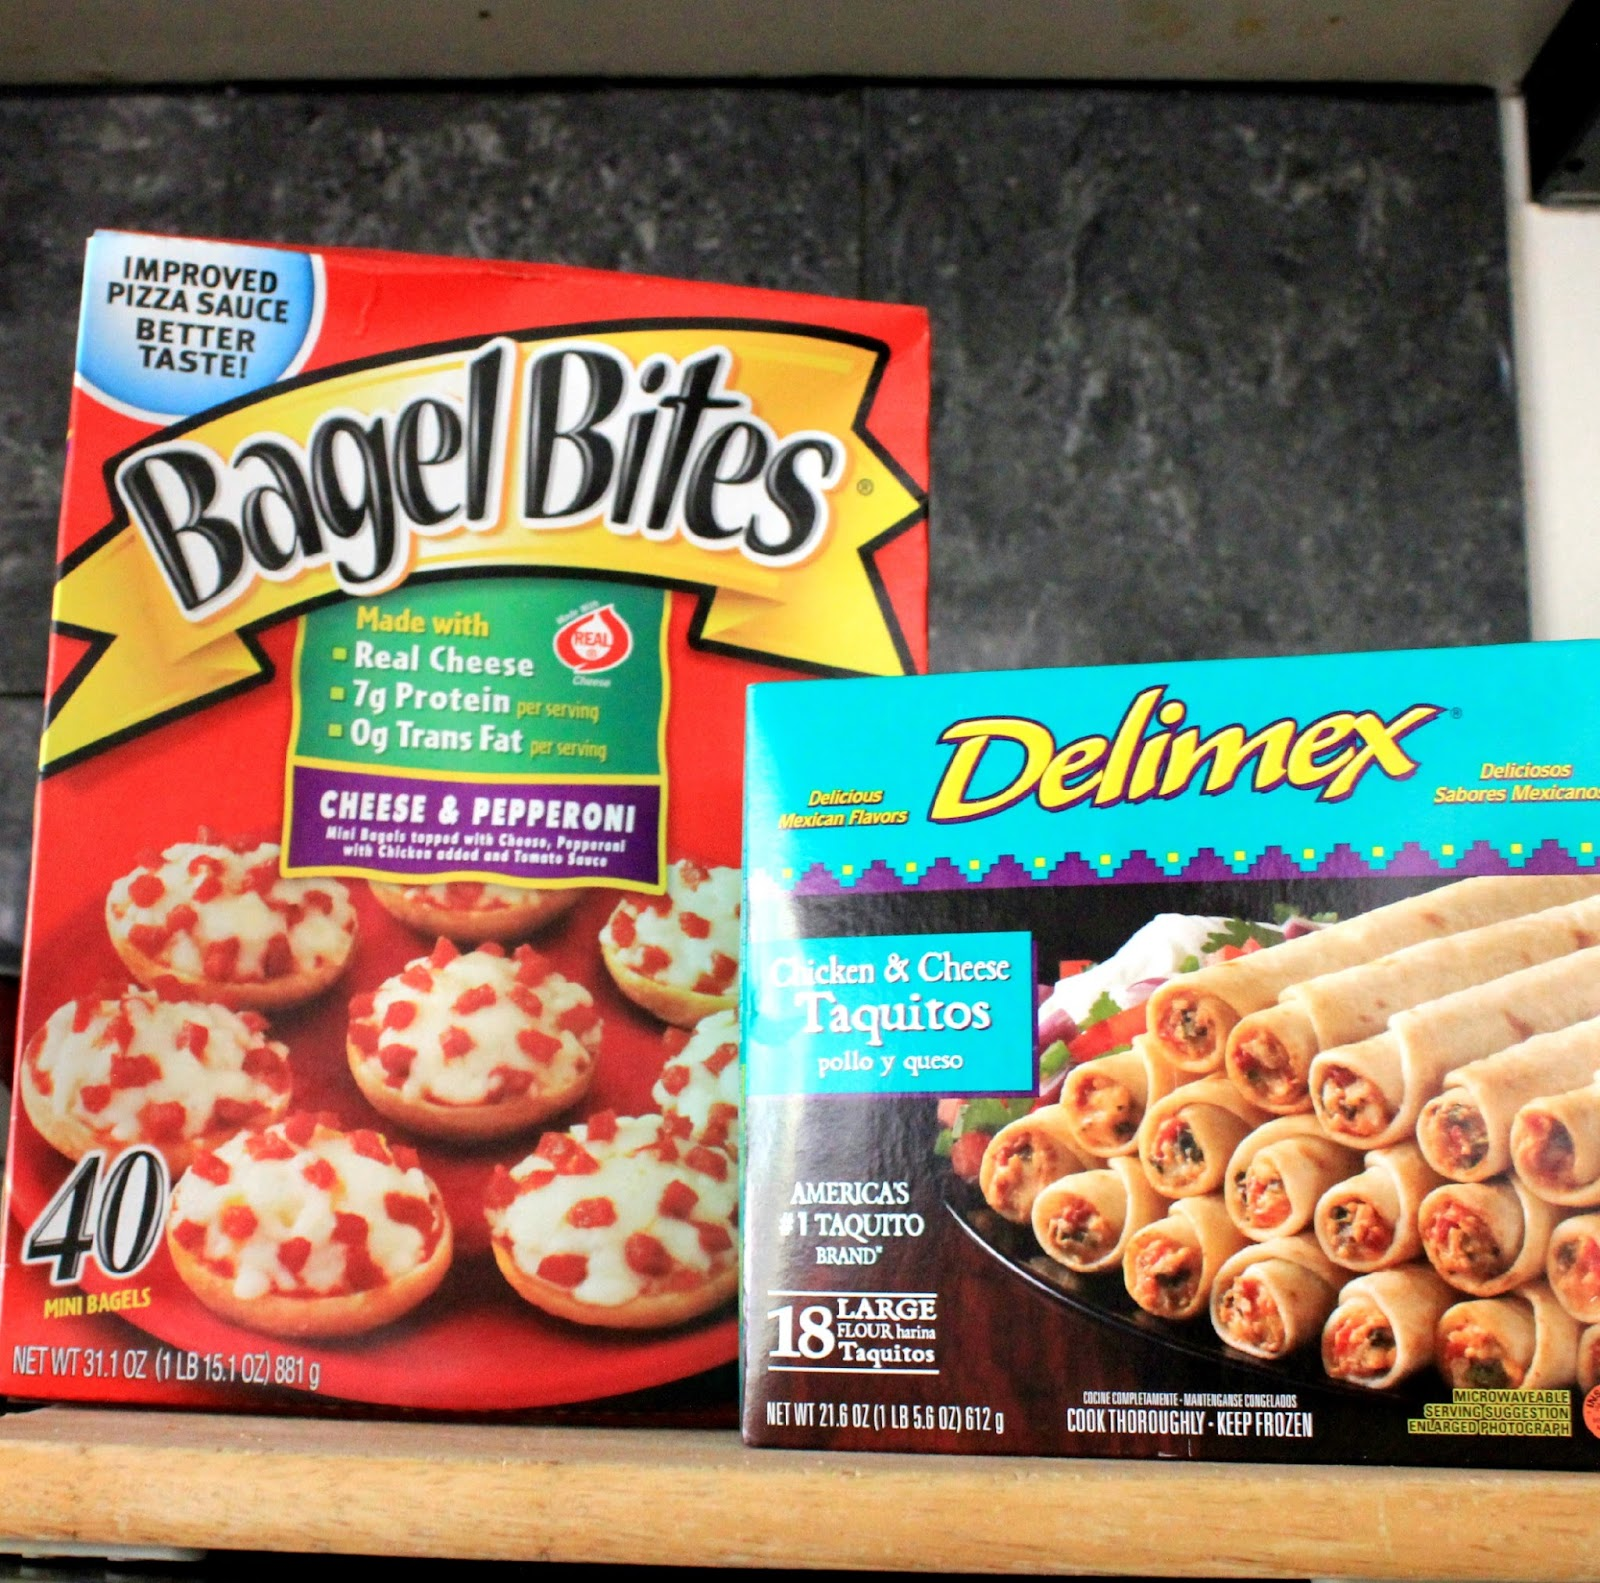 Bagel Bites and Delimex are great #AfterSchoolSnacks #shop